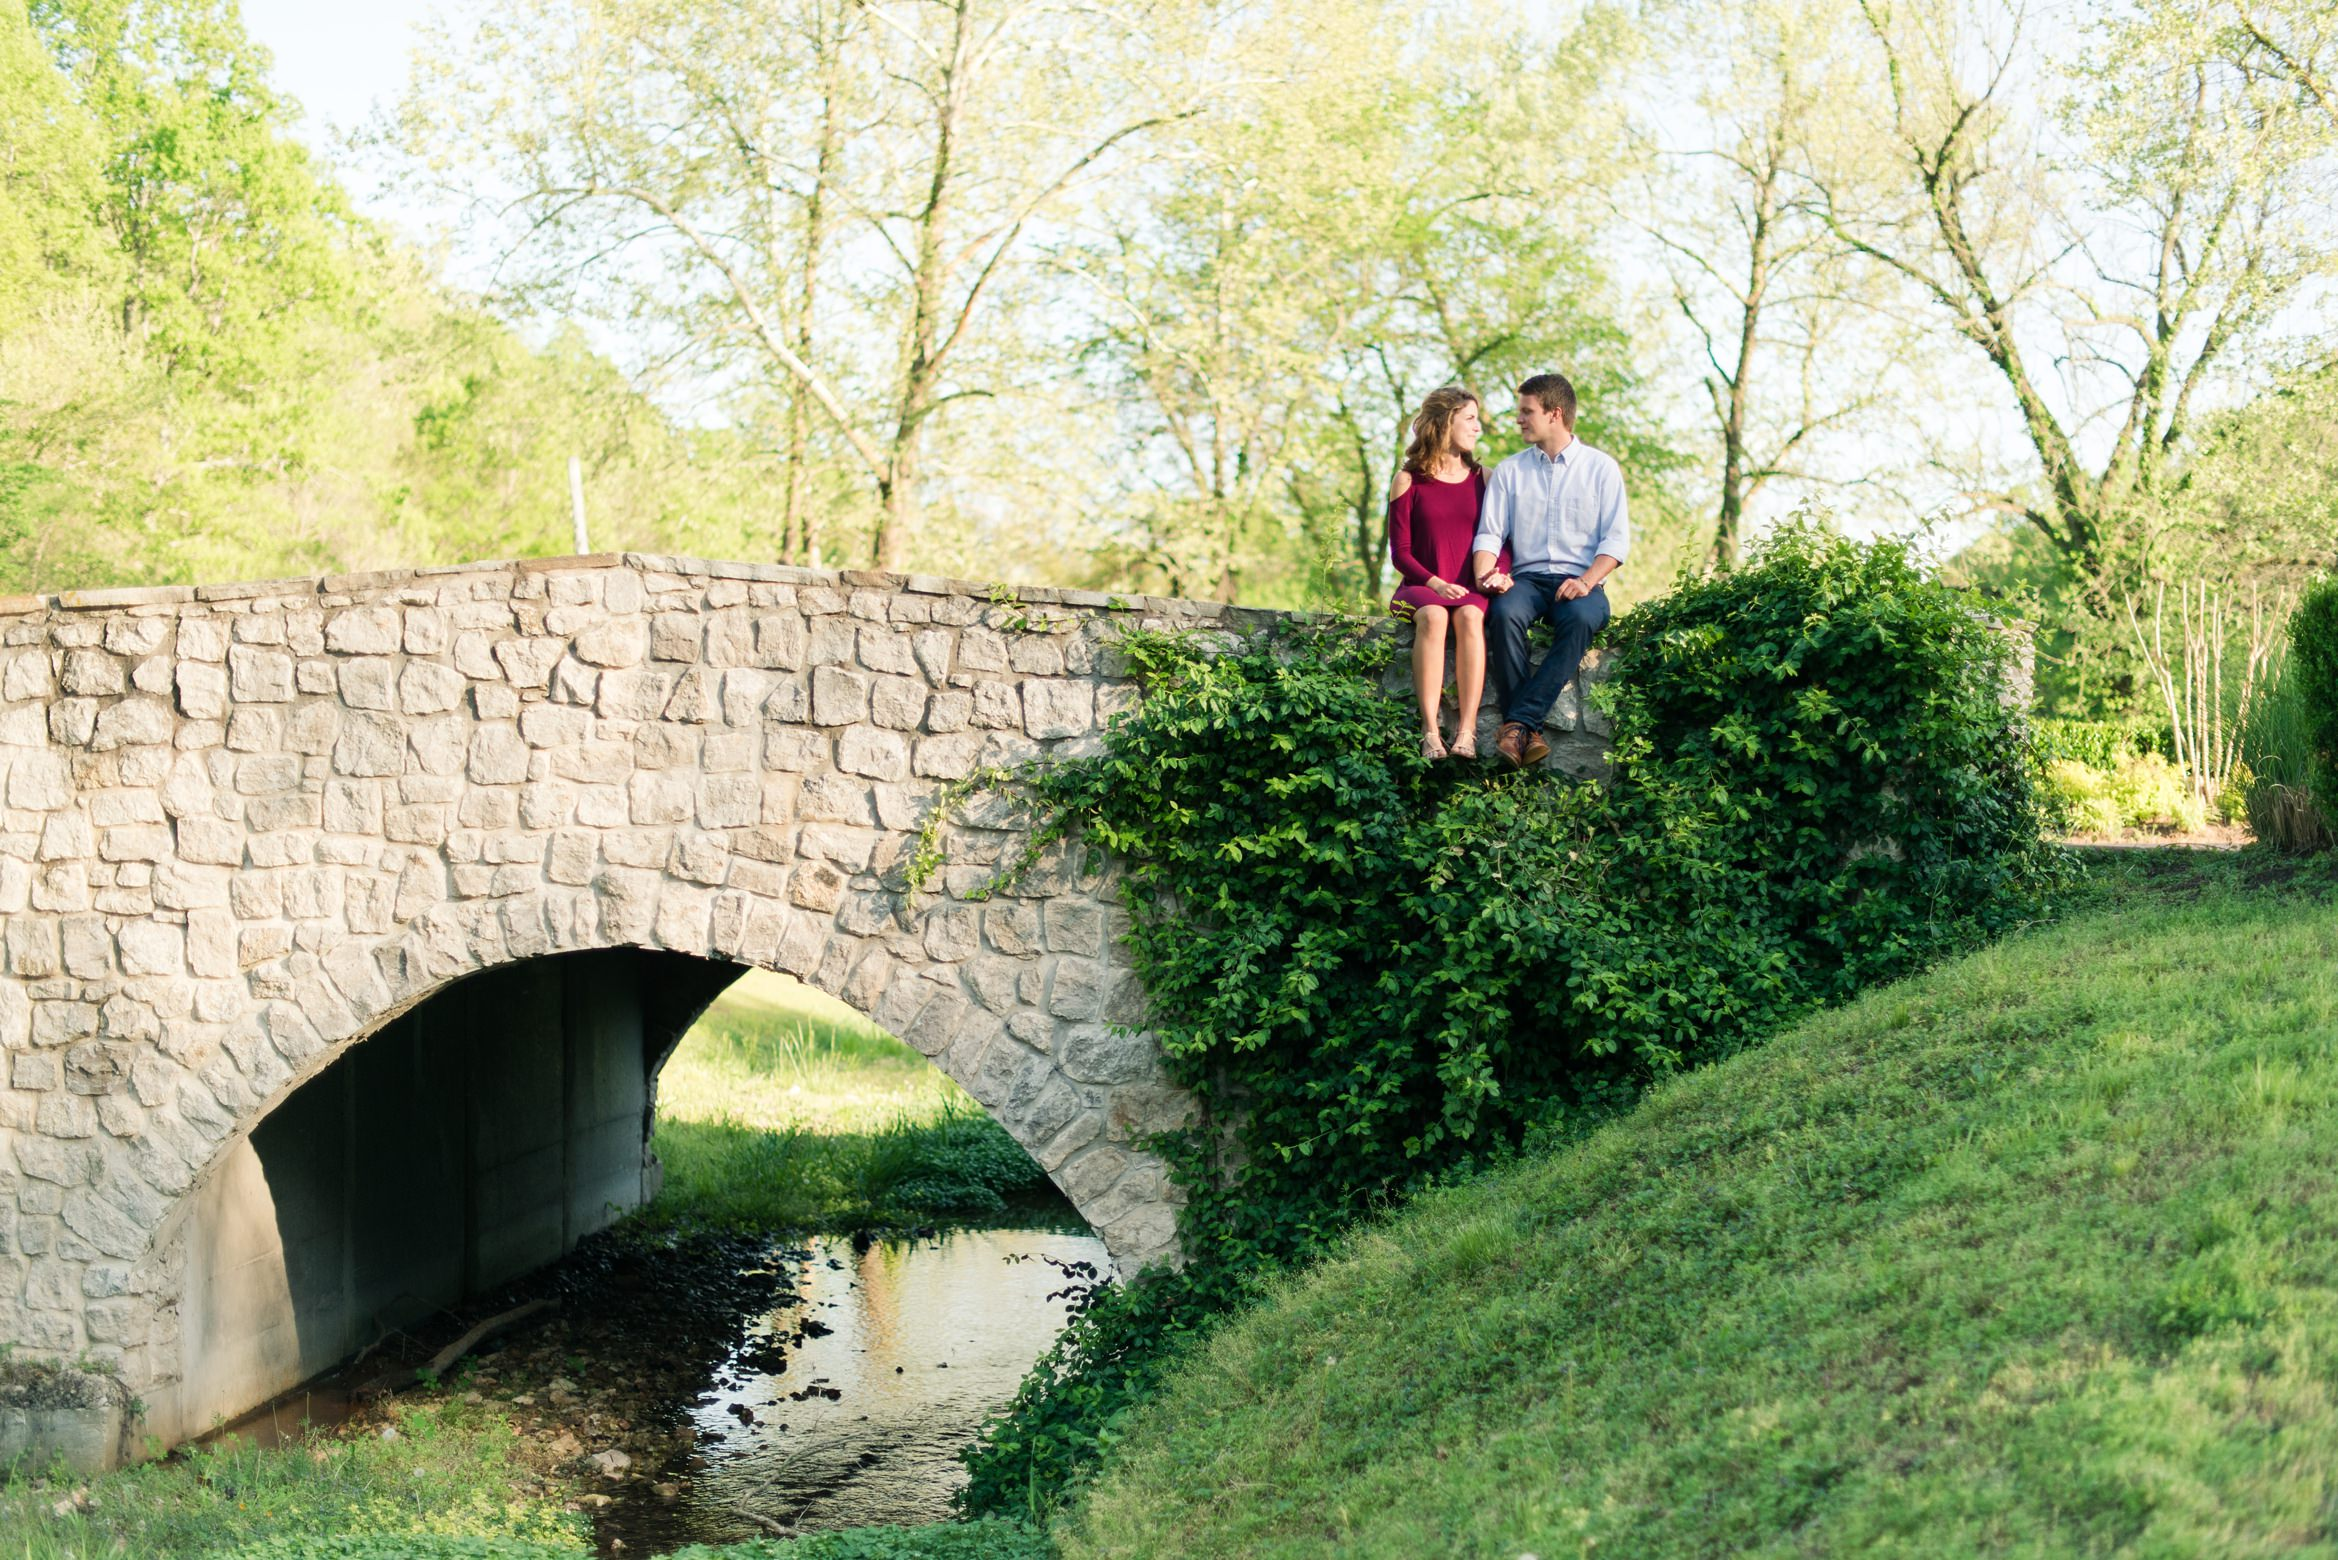 Bradley + Kate Engagement Photos in Siloam Springs, AR